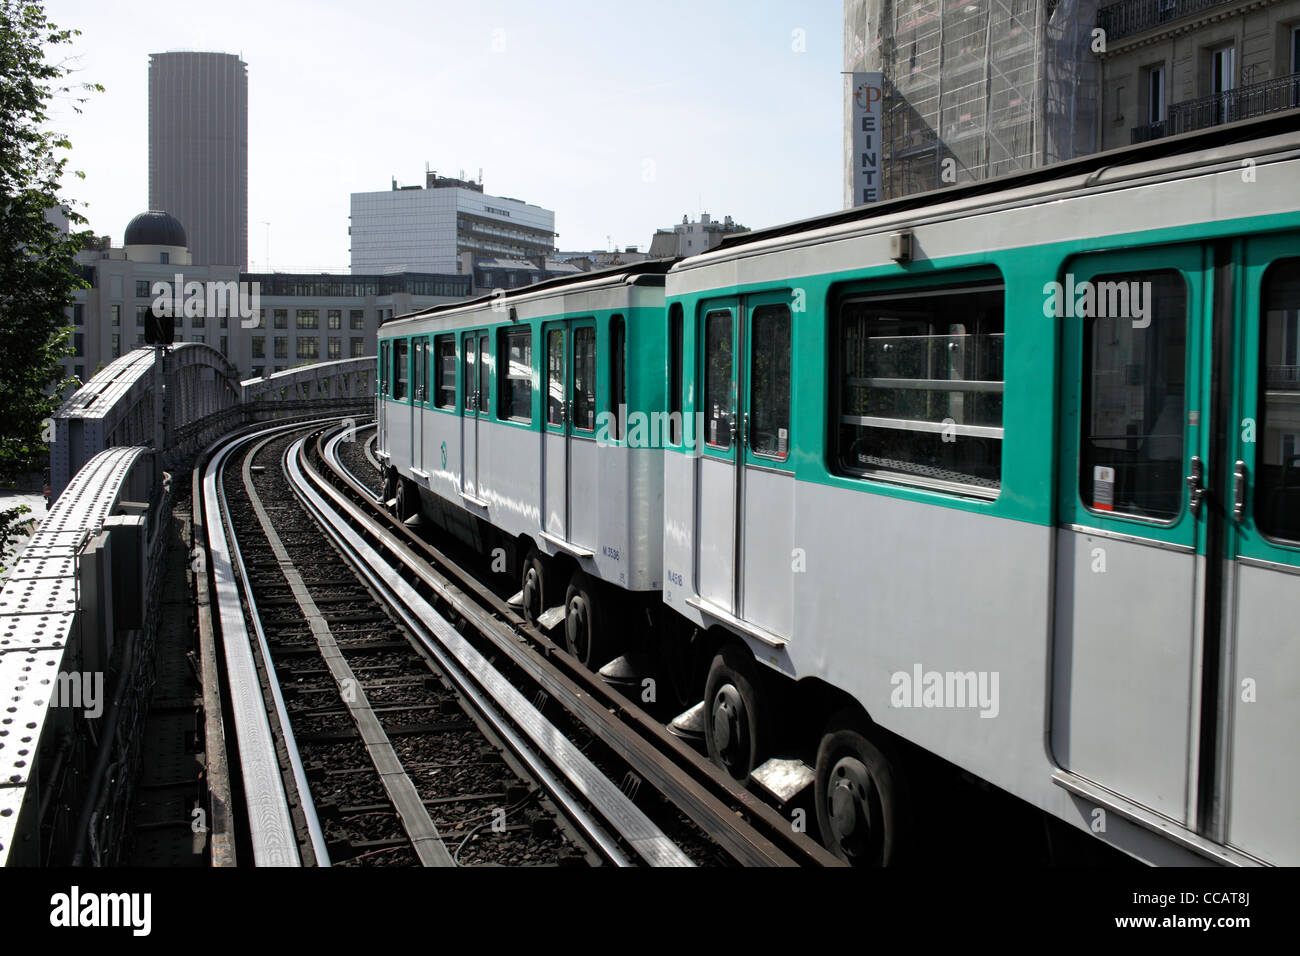 Metro train on Line 6 at Sevres Lecourbe station, Paris. Note rubber tyres on wheels and horizontal guide wheels. - Stock Image